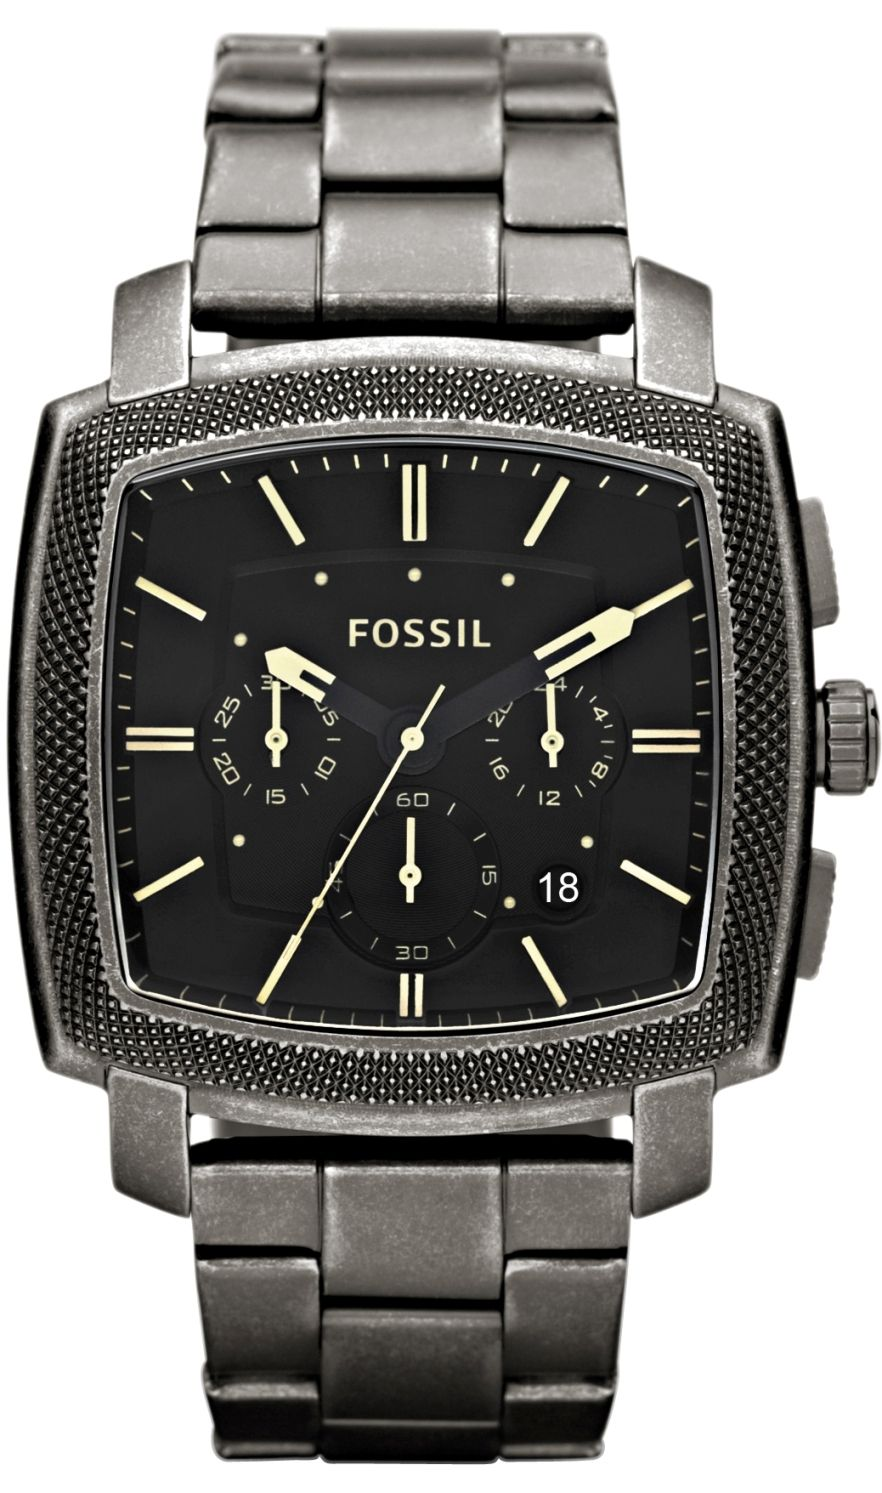 Jr1397StylePinterest FossilwatchMachine Men's FossilwatchMachine Watch Watch Jr1397StylePinterest Men's FossilwatchMachine Men's Jr1397StylePinterest Watch kXuiOPZ